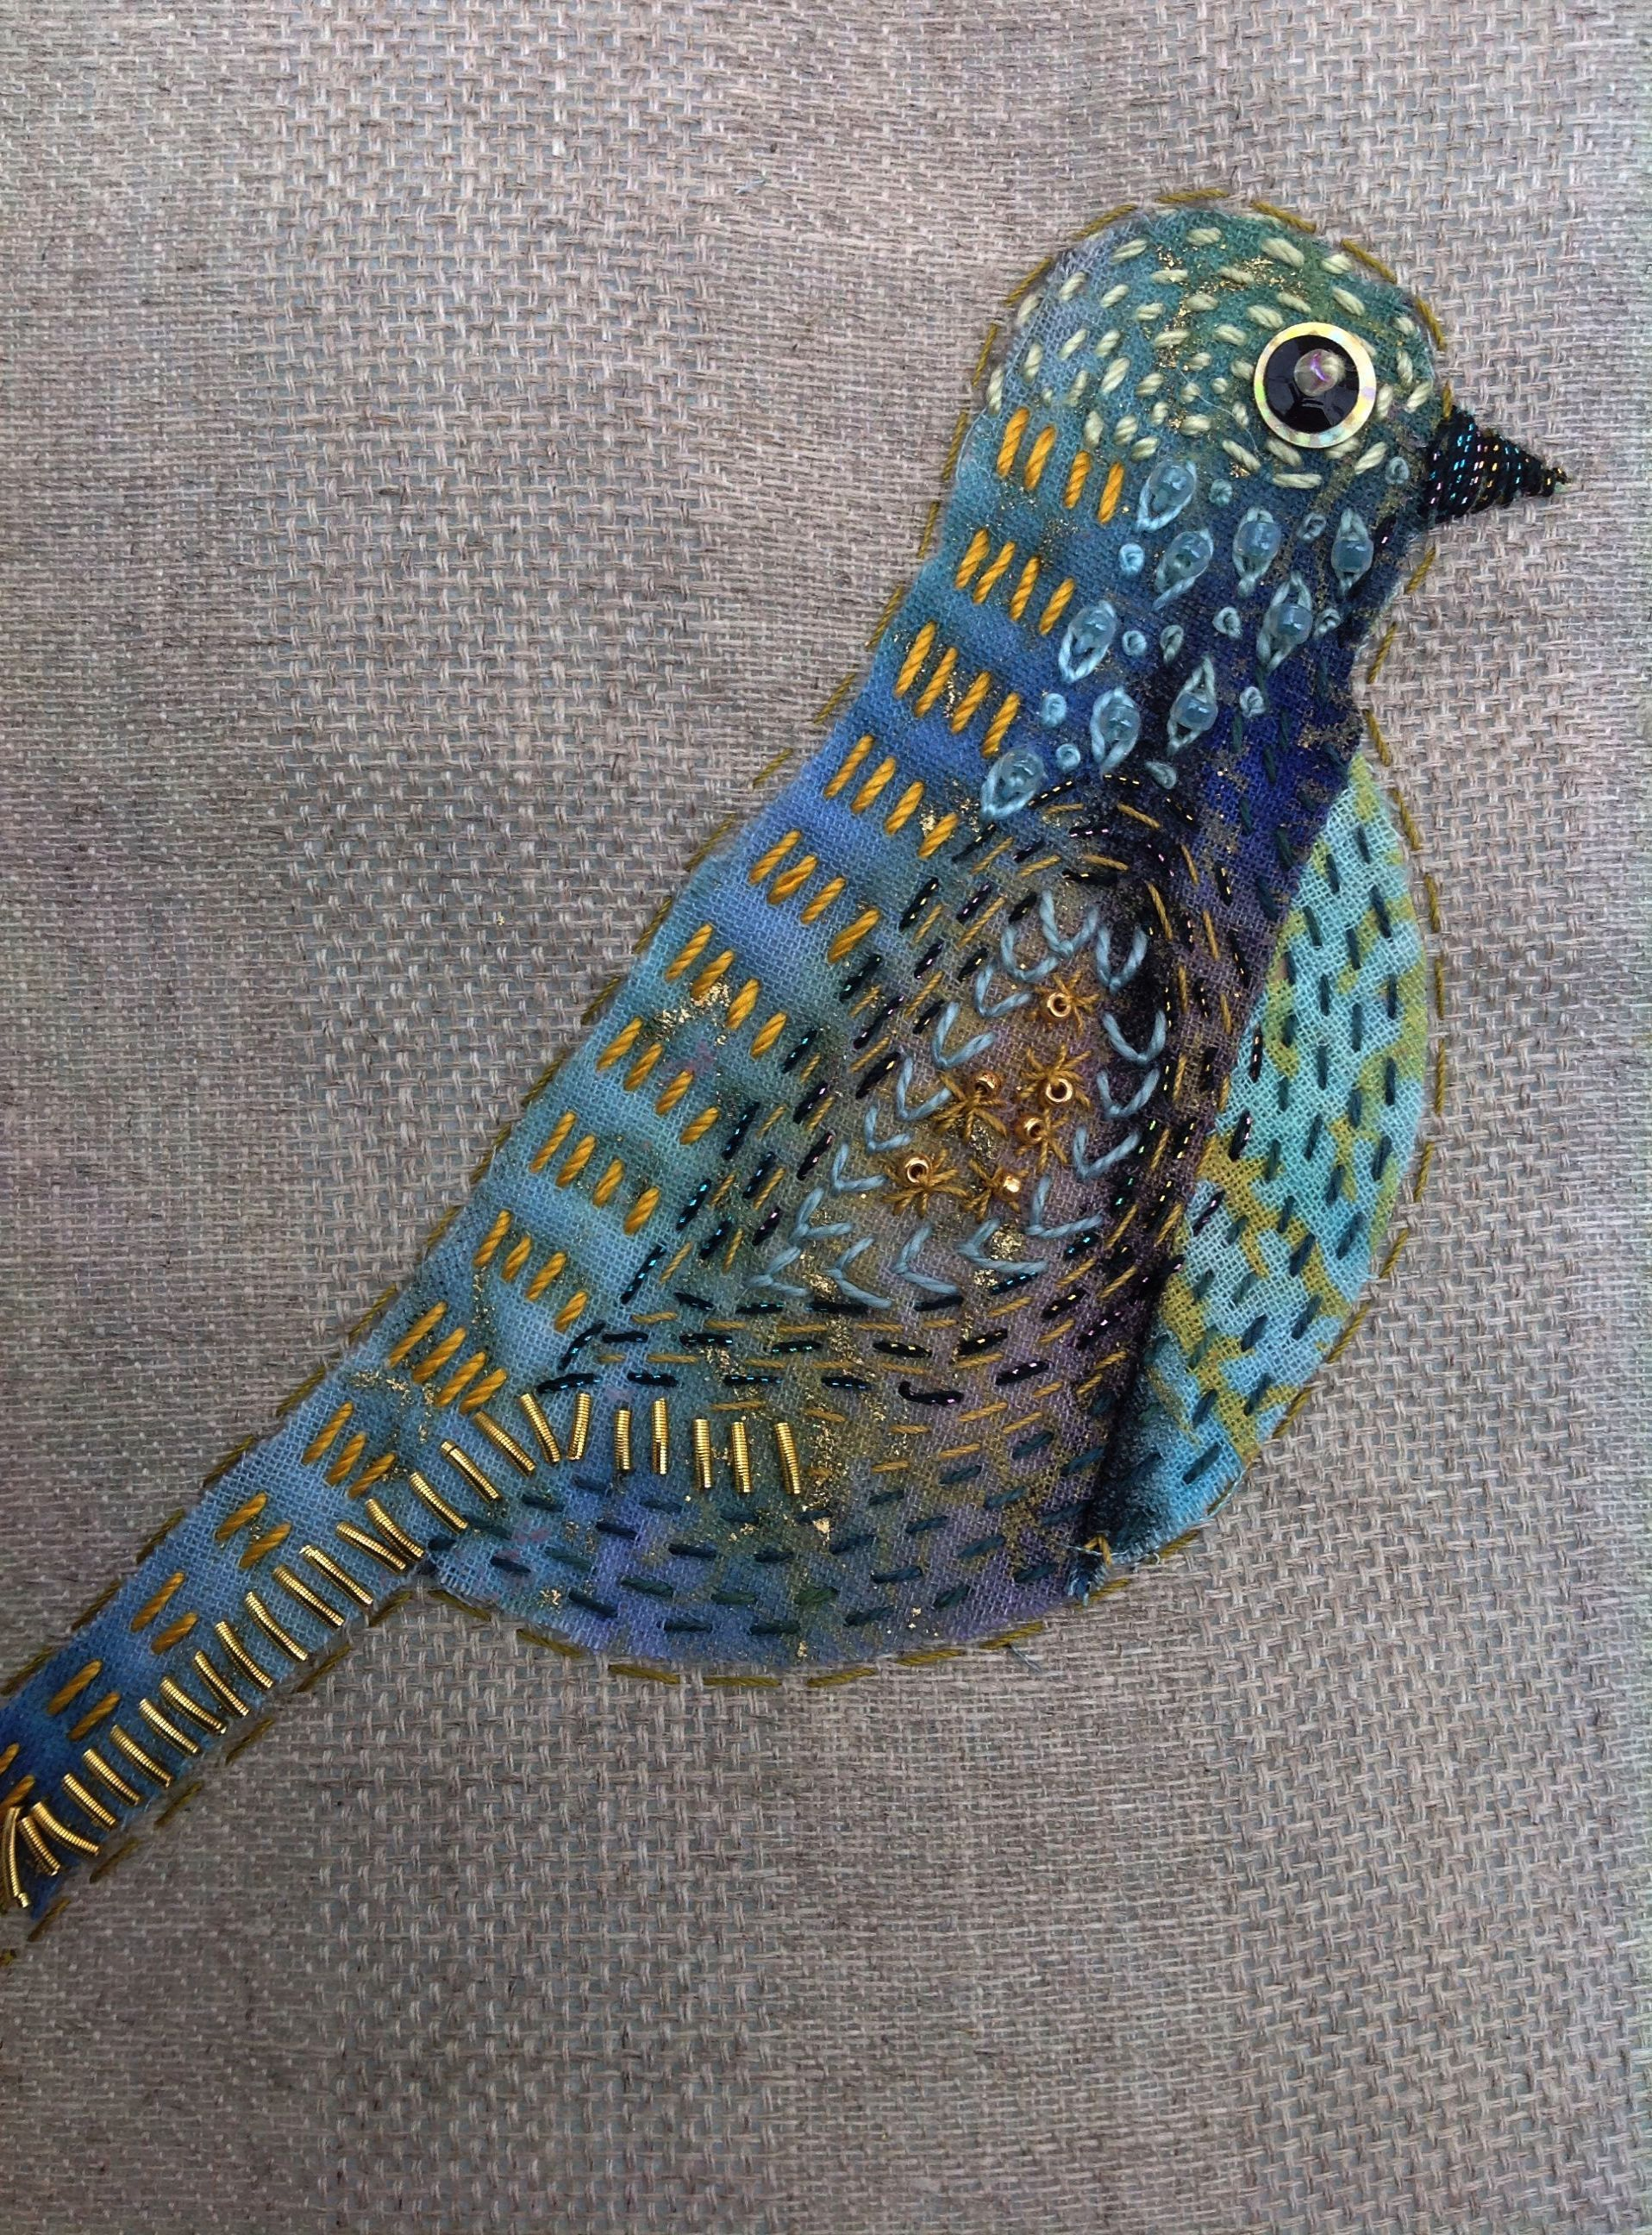 Running Stitch Not Going Away Back Stitch Pain #birdfabric